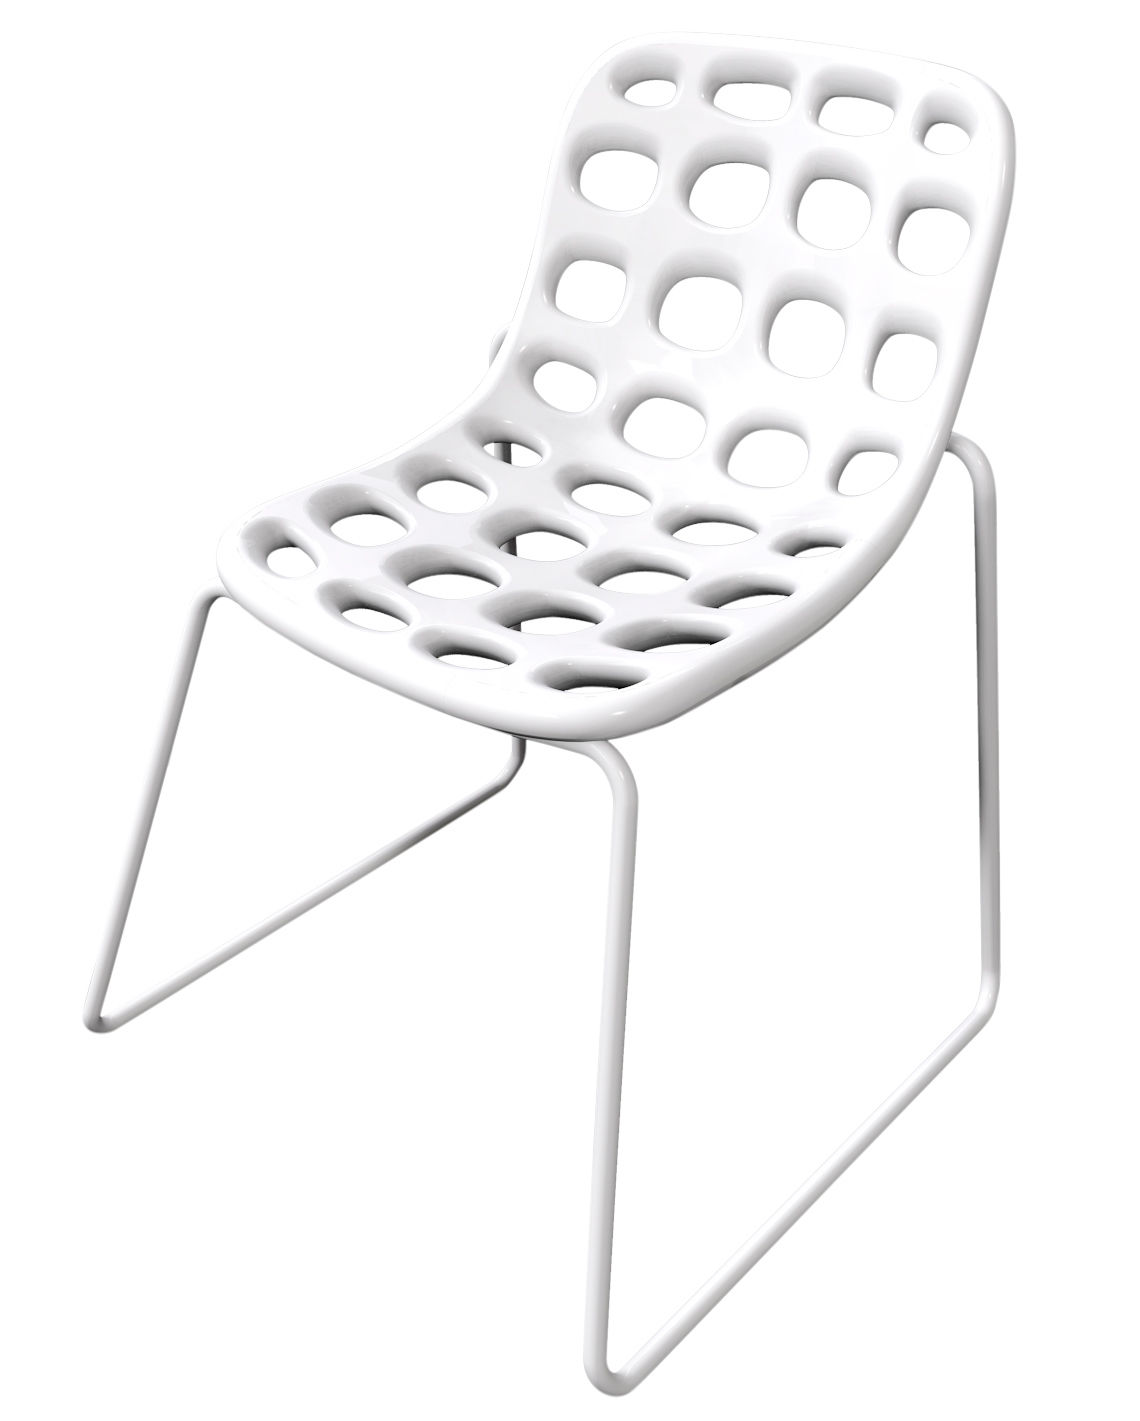 Furniture - Chairs - Chips Stacking chair - Plastic & metal legs by MyYour - White - Painted stainless steel, Polythene